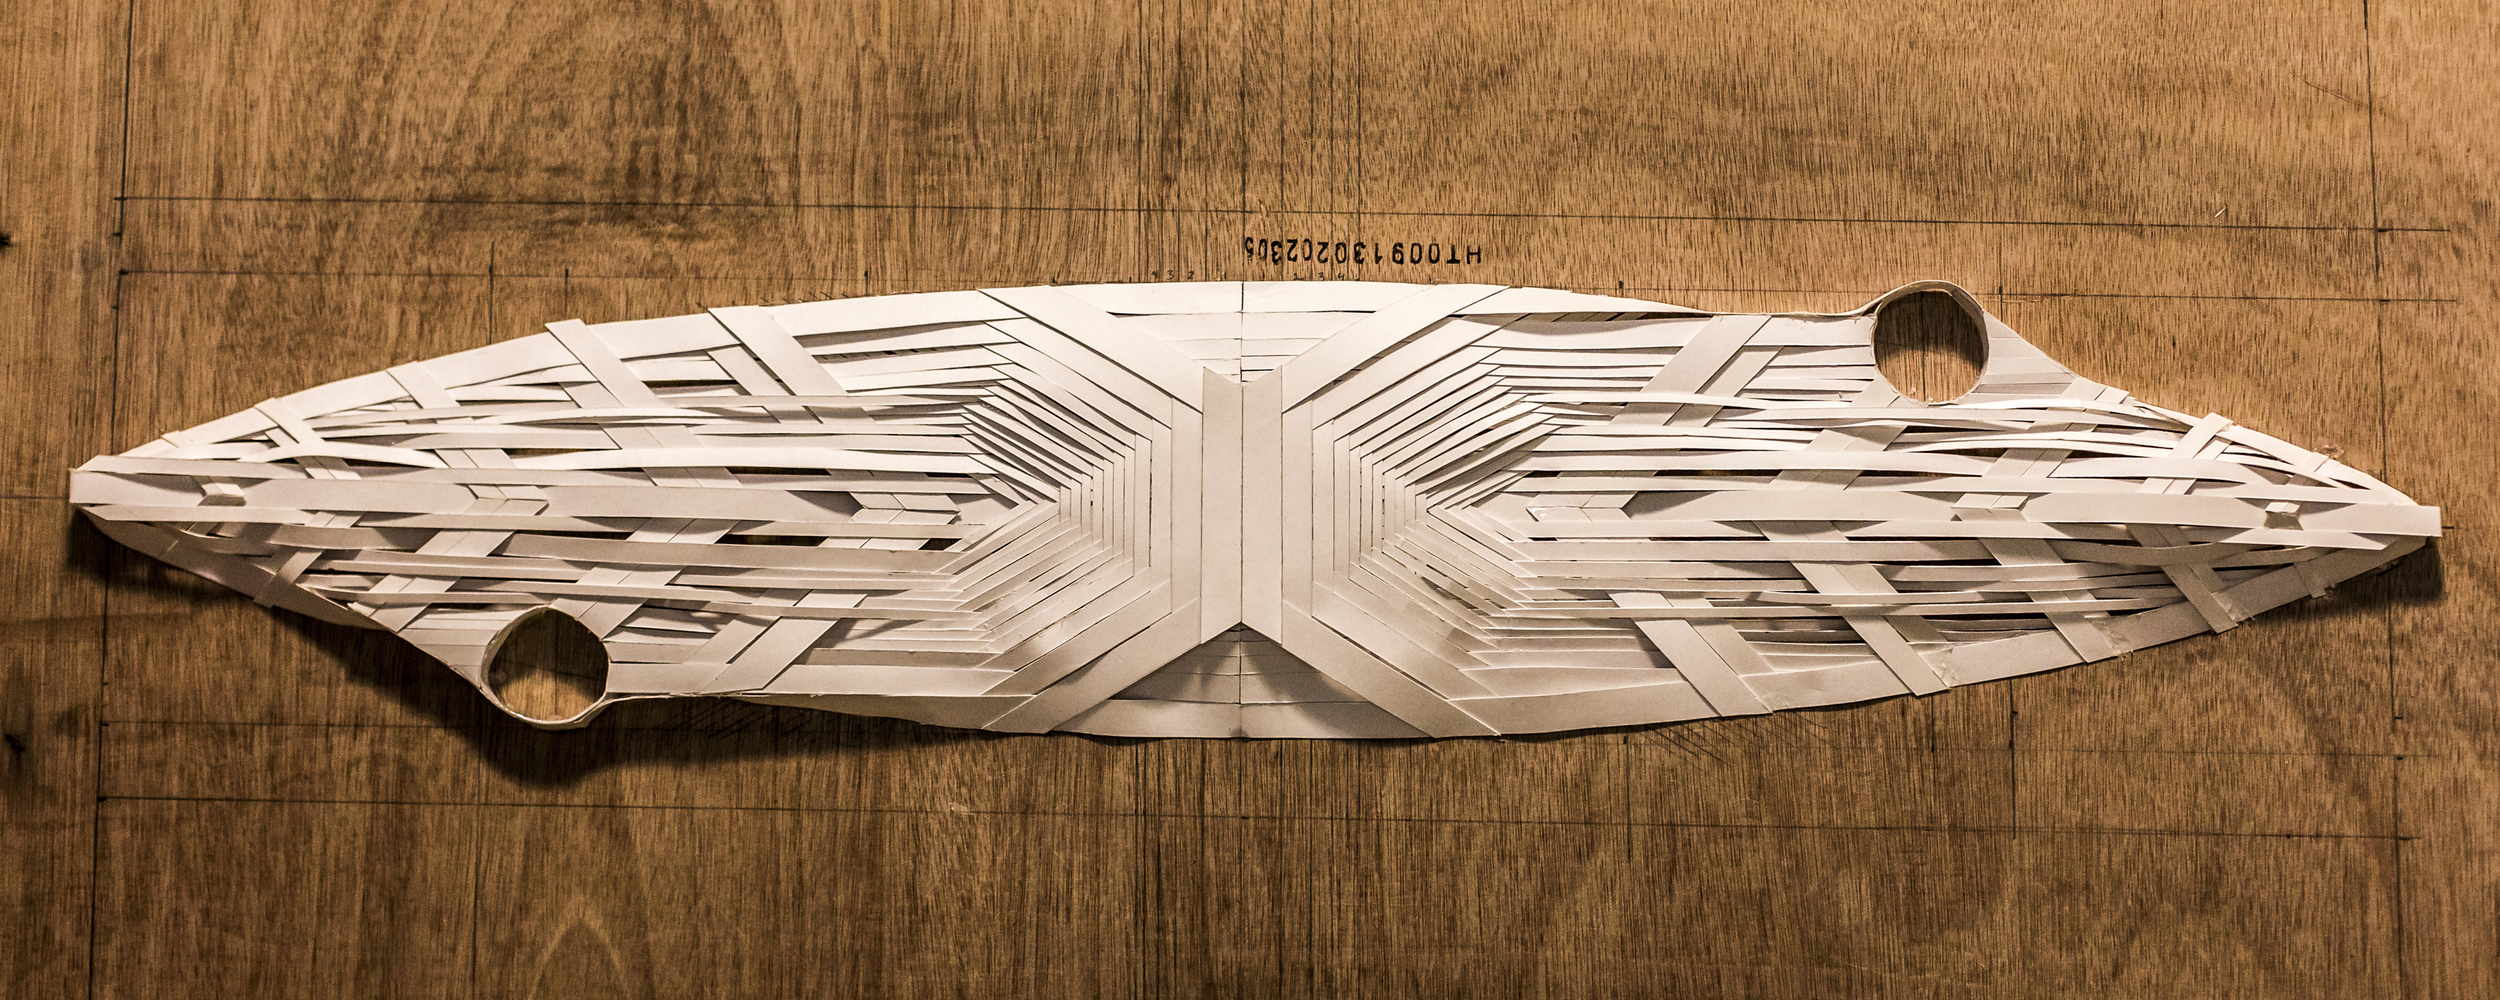 Paper Model for Looking Aft